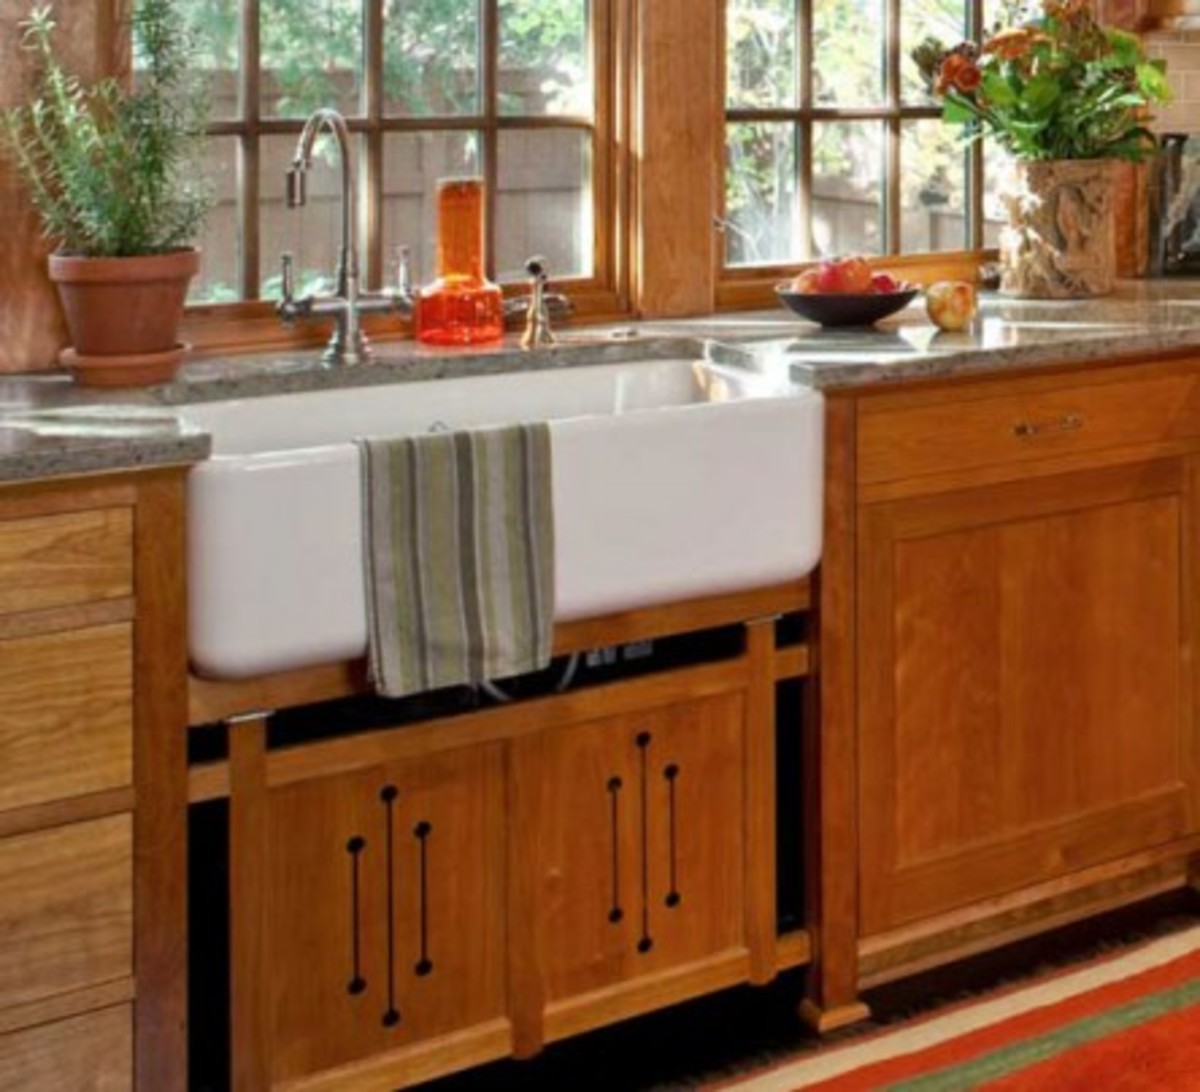 Cutout designs and crossed corners are Prairie-influenced elements in a kitchen with red birch cabinets, in an addition by David Heide to his own 1922 Prairie Style house. Photo by William Wright.